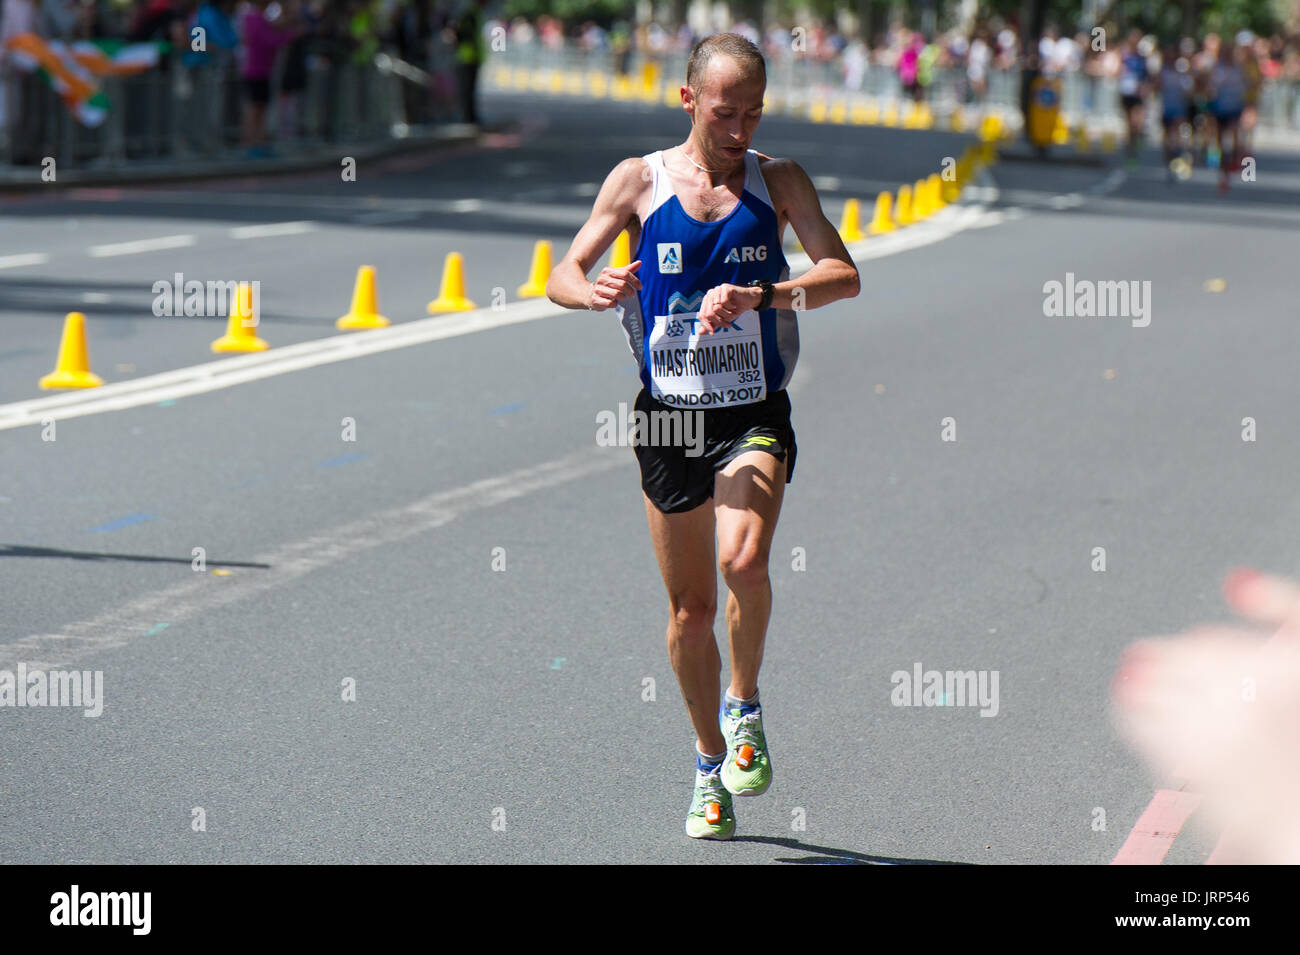 London, UK. 6th August, 2017. Mariano Mastromarino (Argentina) at the IAAF World Athletics Championships Men's Marathon Race Credit: Phil Swallow Photography/Alamy Live News - Stock Image